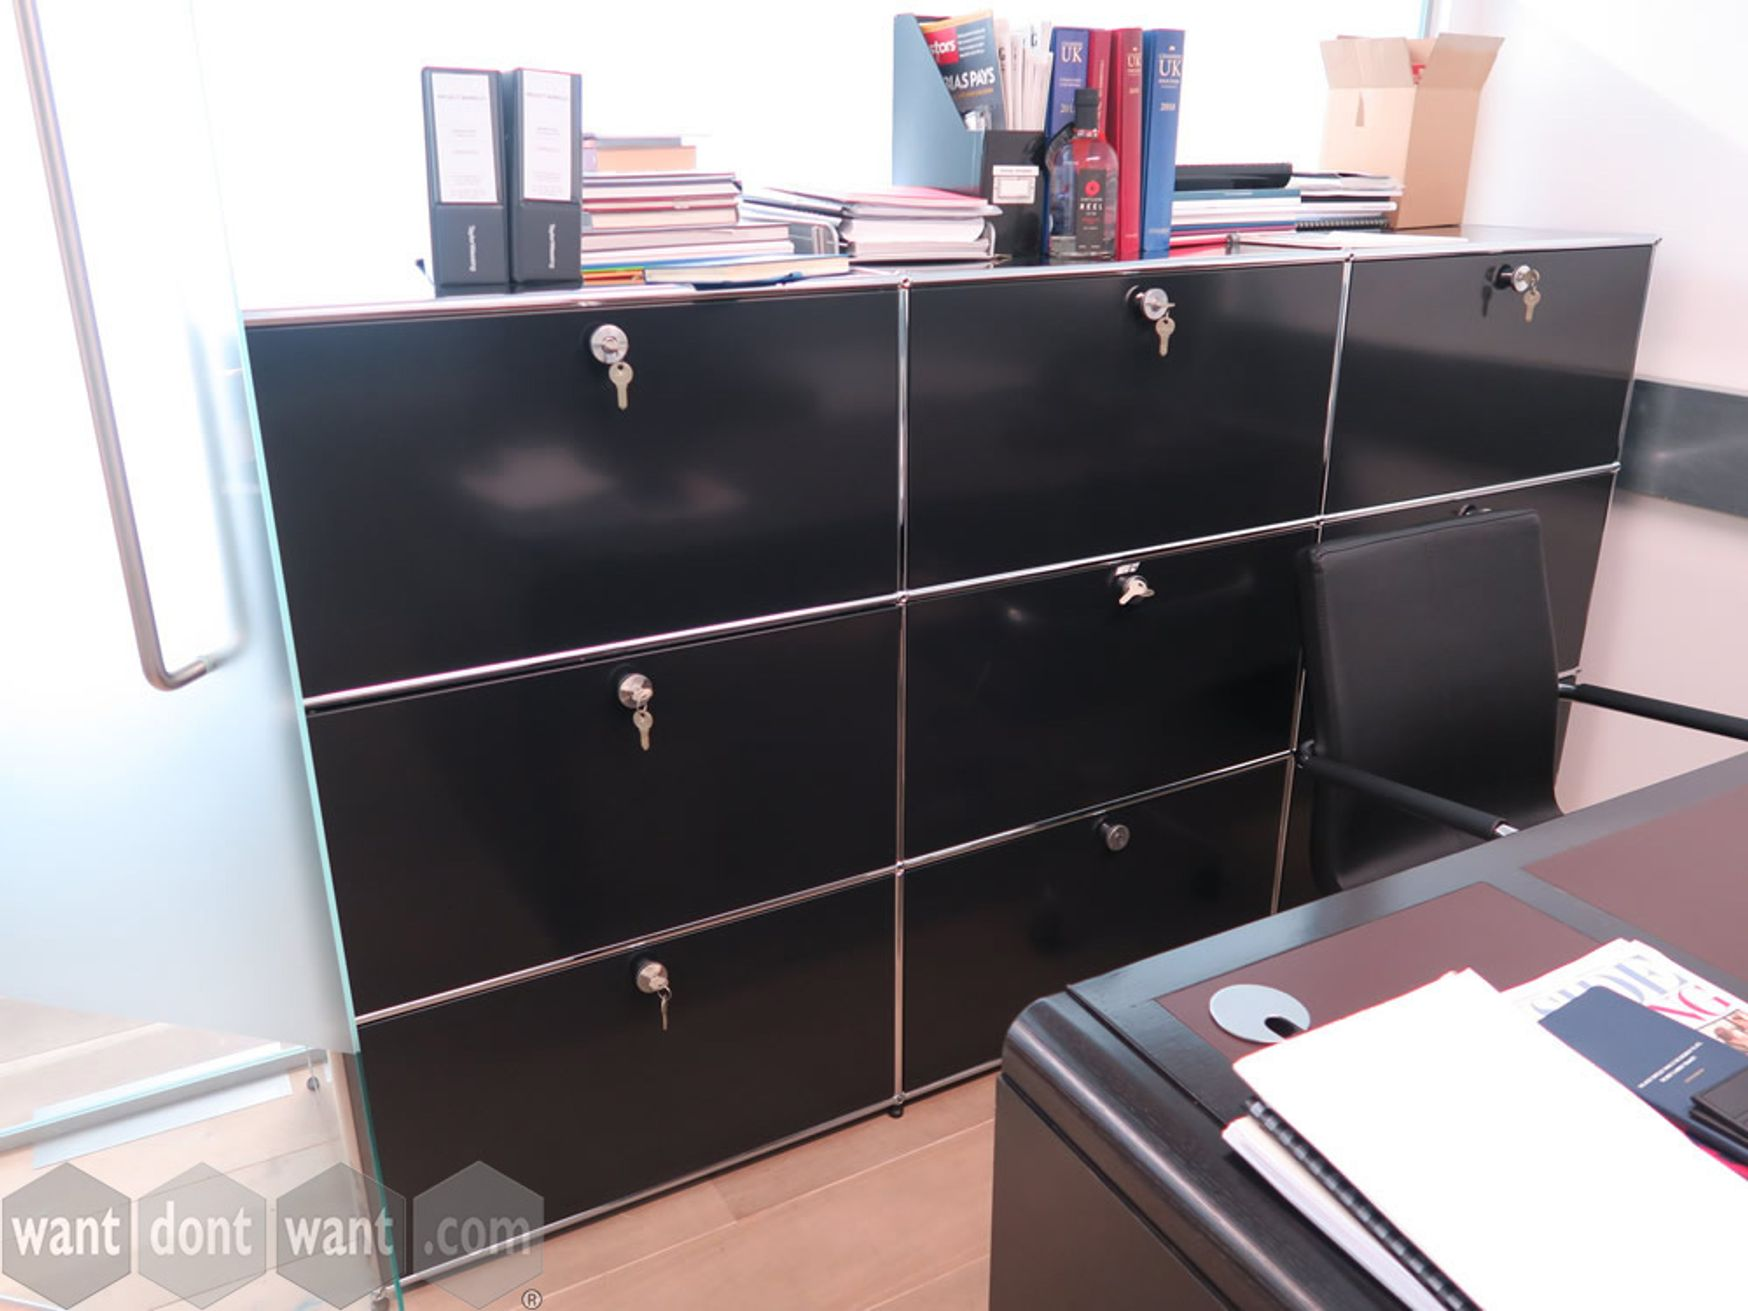 Used collectable USM Haller in black/chrome finish.